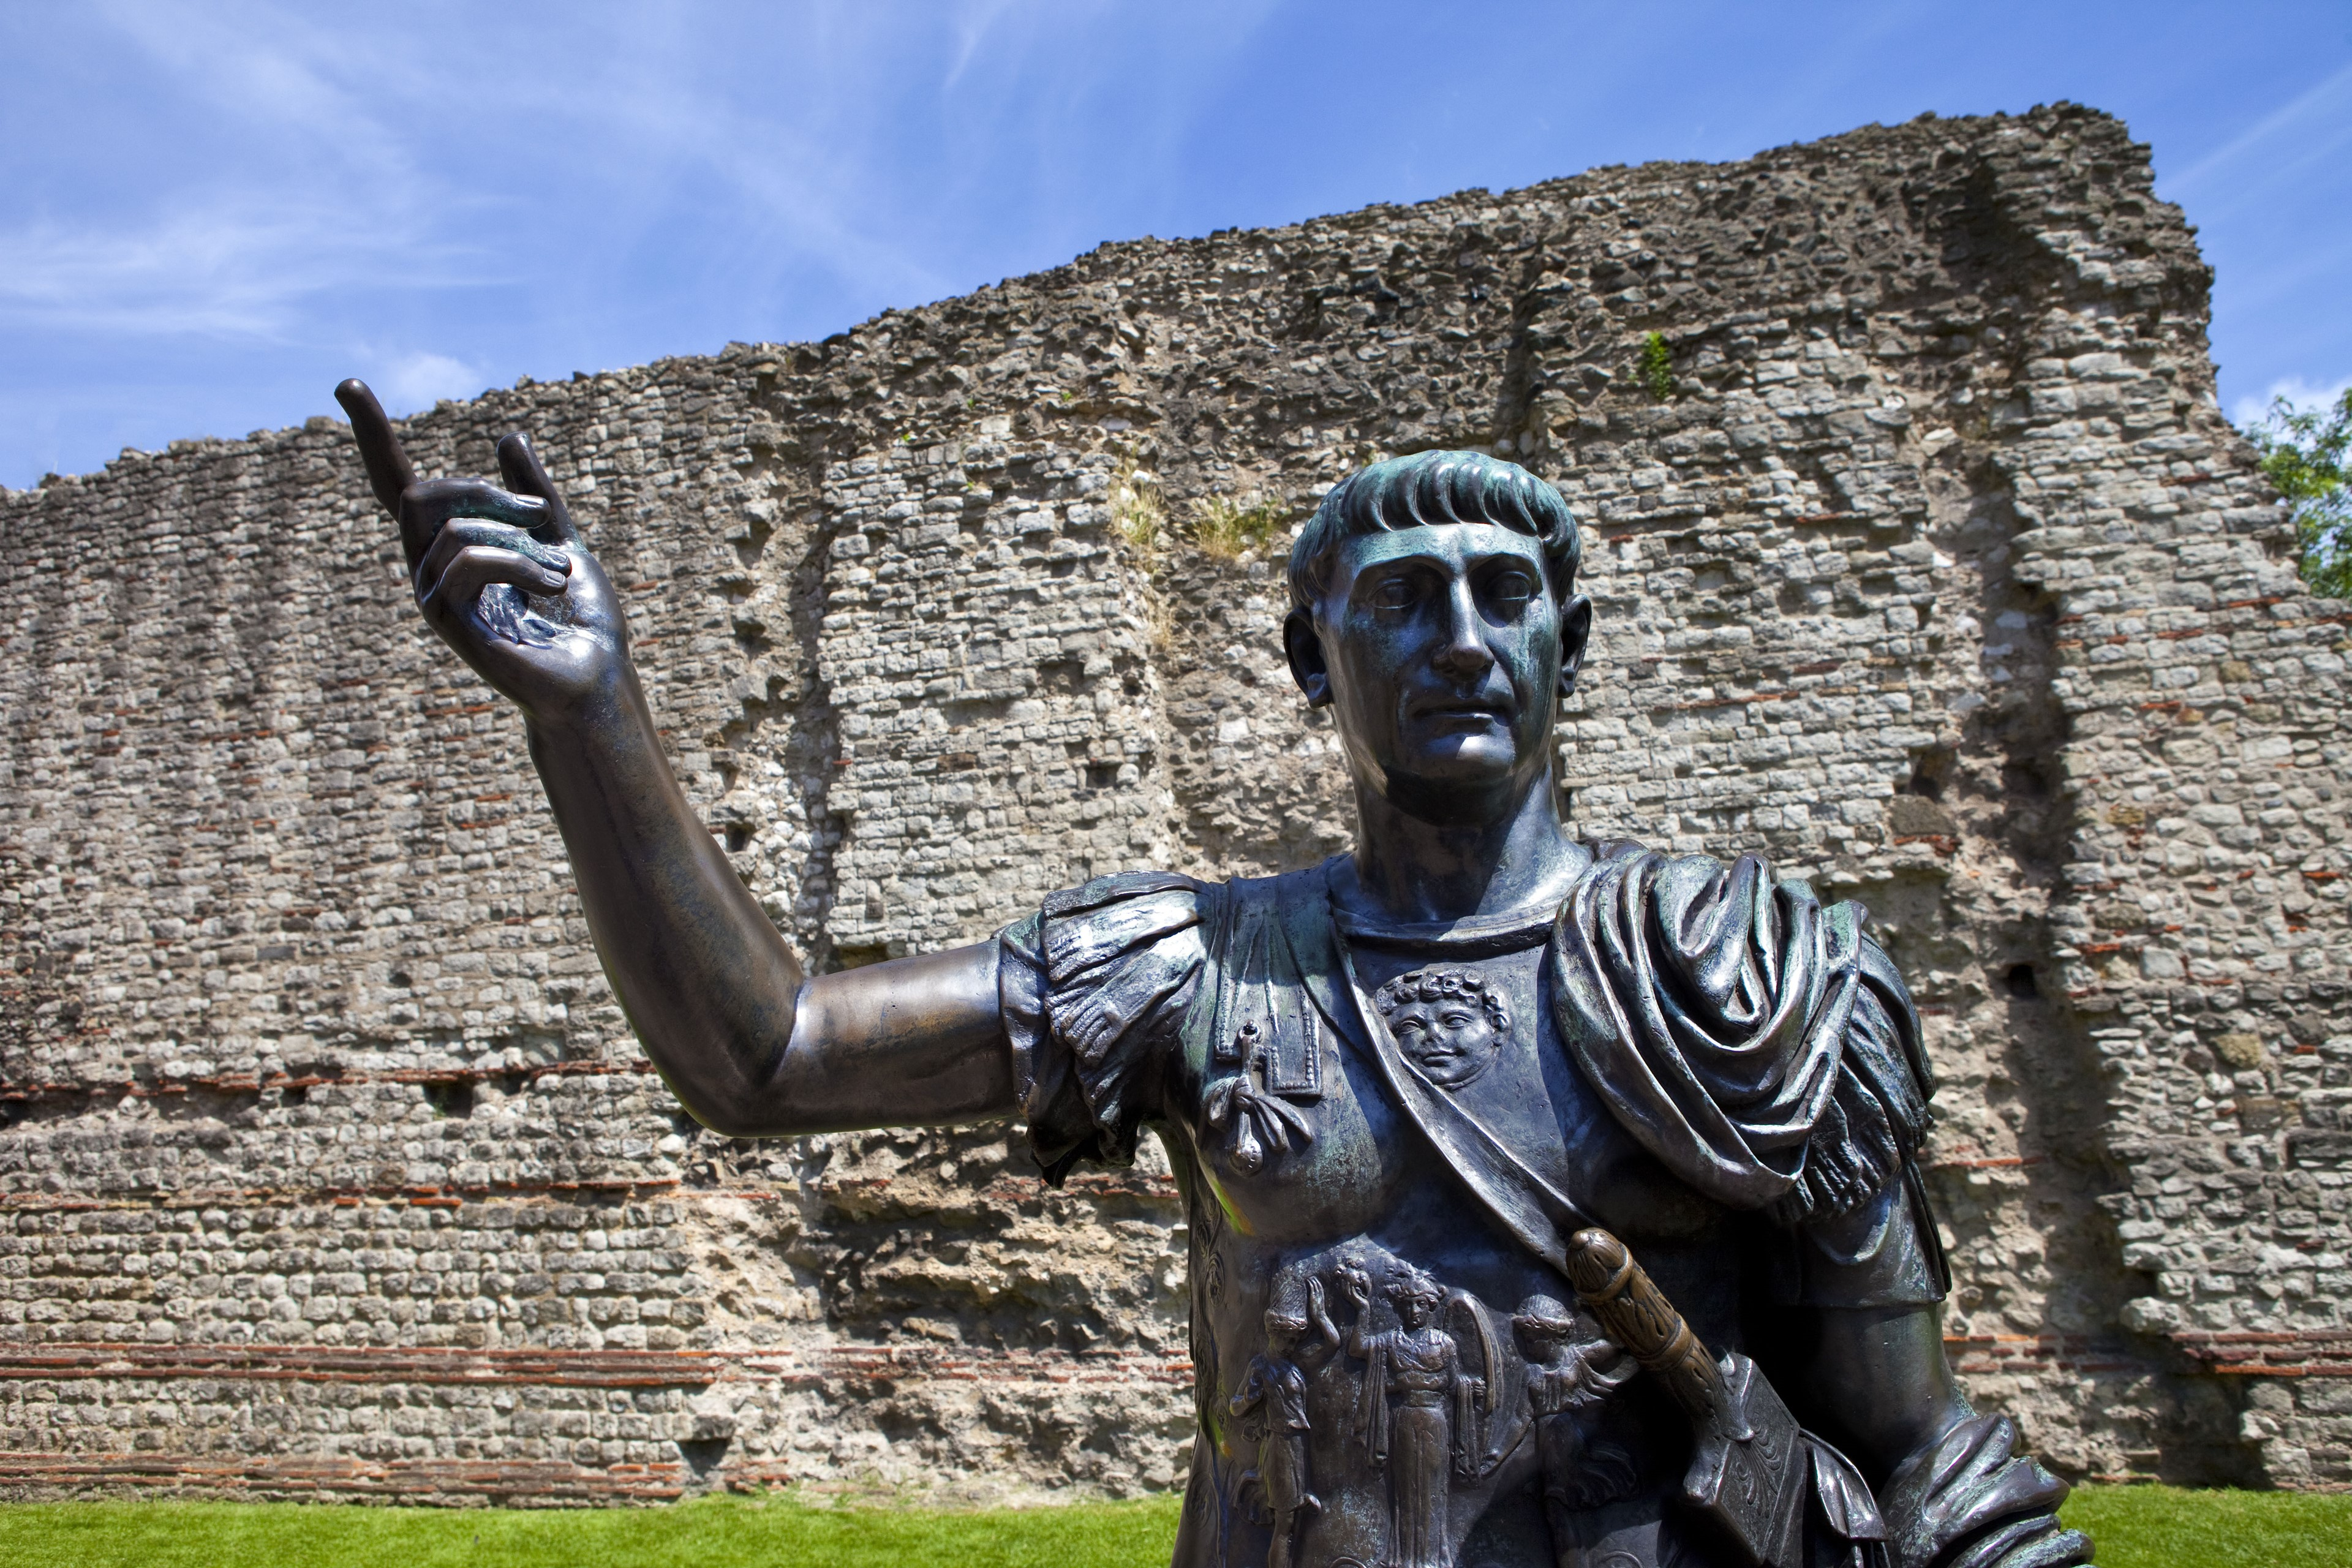 Statue of Roman Emperor Trajan and remains of the London Wall